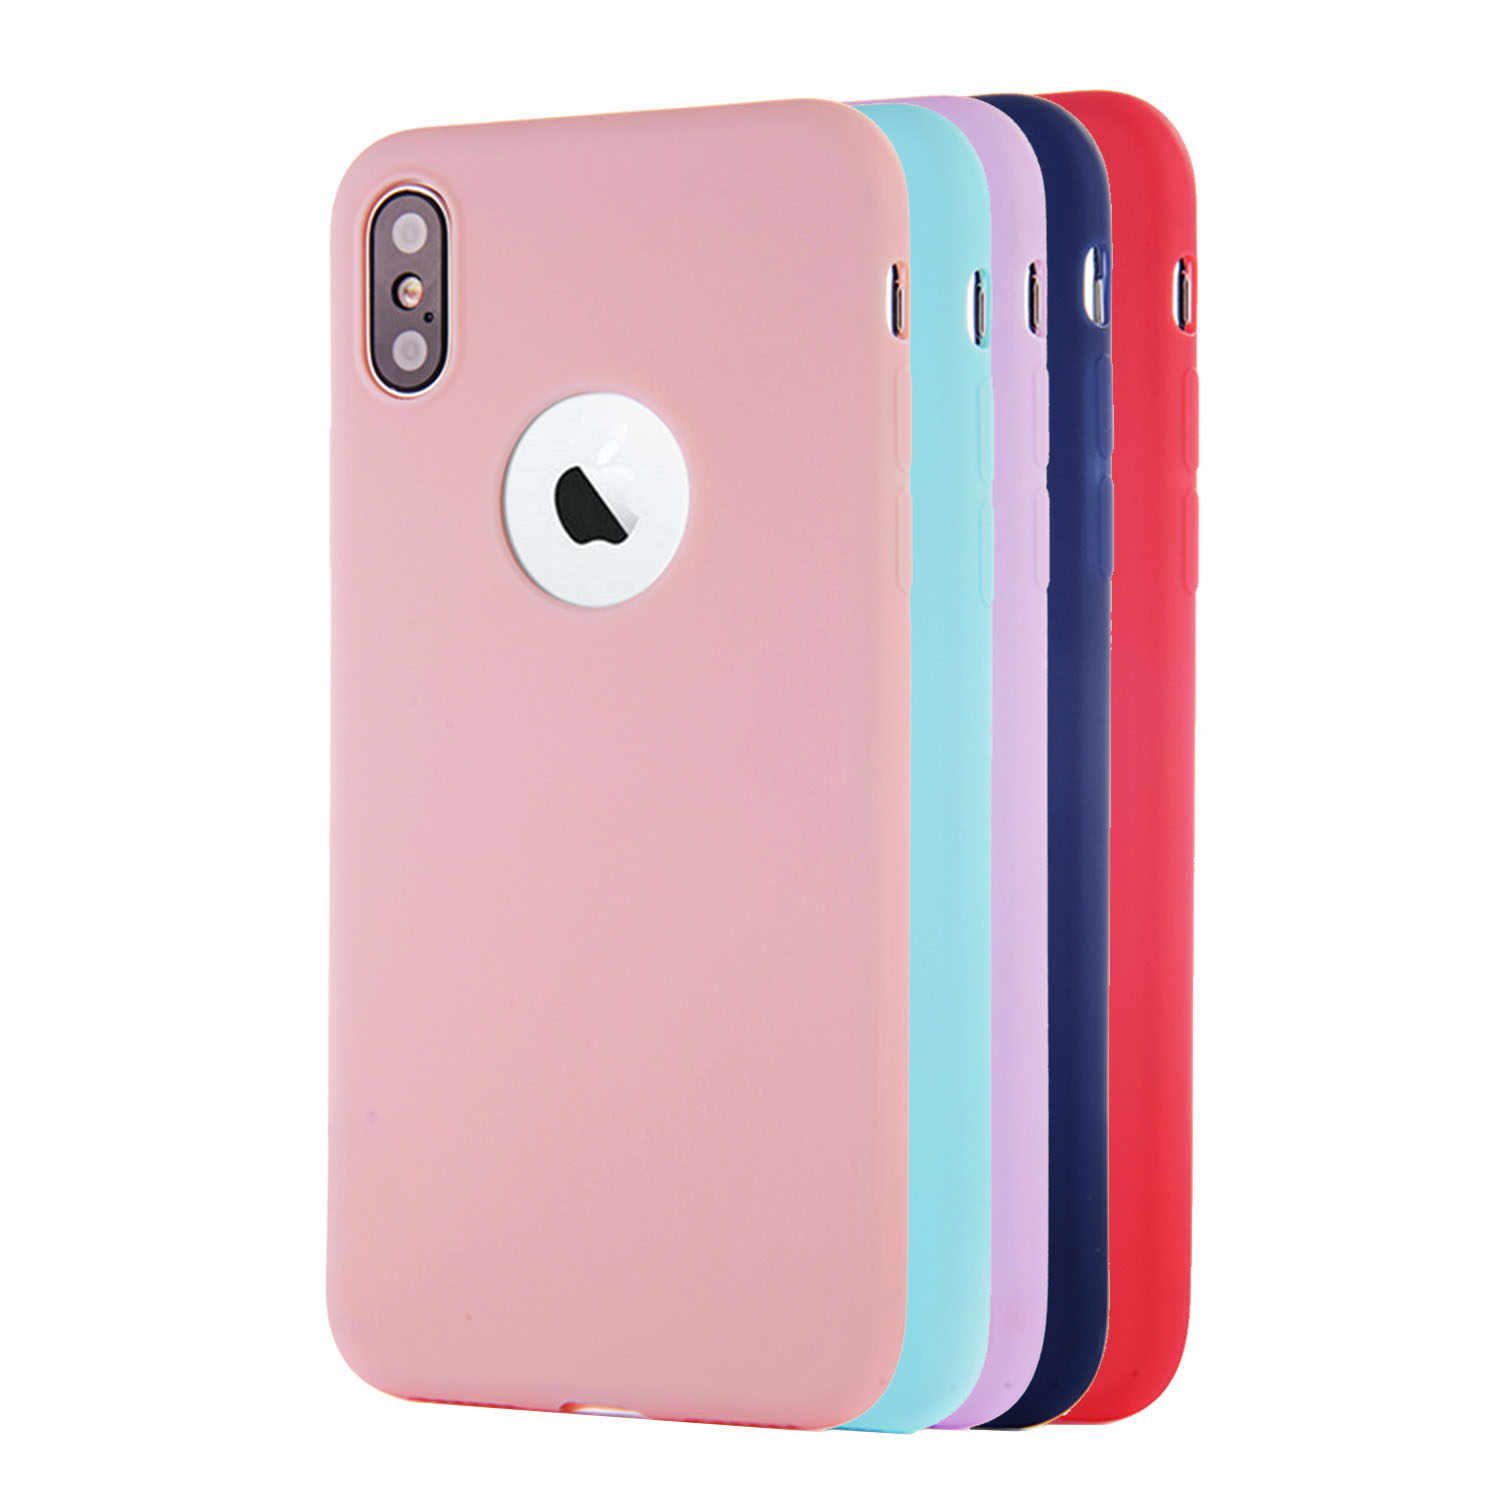 Candy Silicone Case for iPhone 6 s 6S iPhone 7 8 Plus iPhone X 10 5 5S SE 5SE 6Plus 6SPlus 7Plus 8Plus Cell Phone Cover